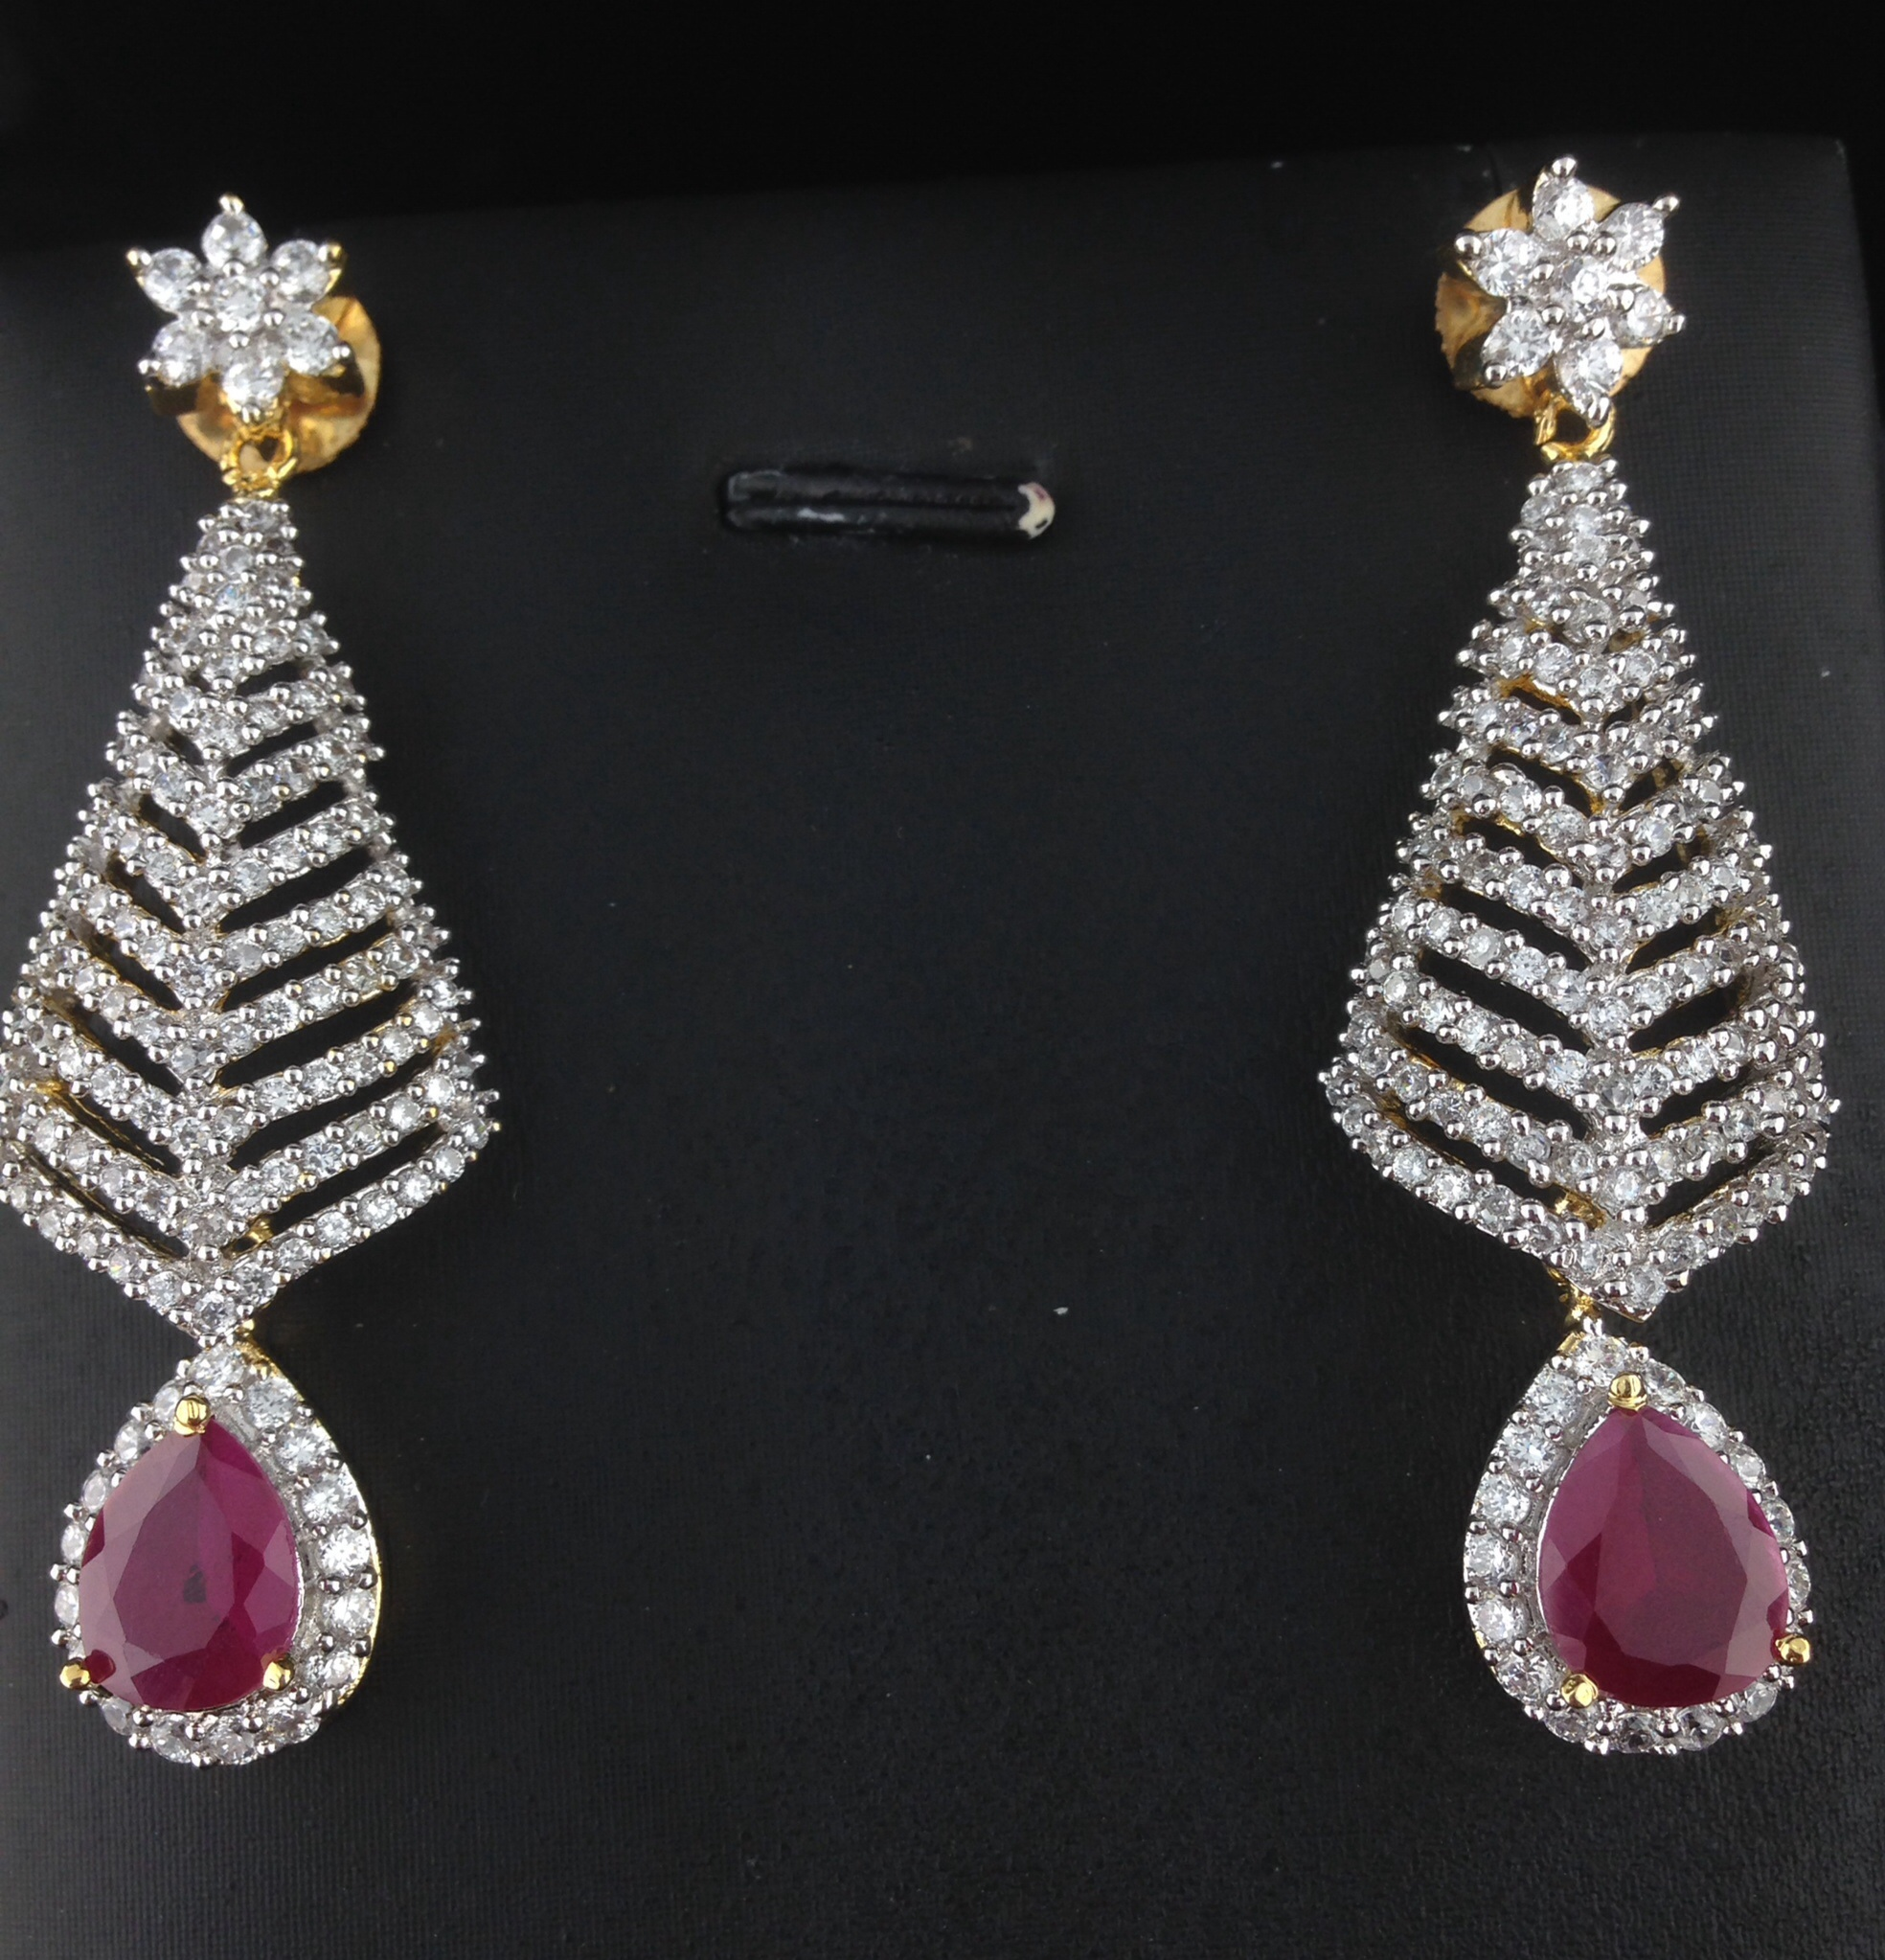 American Diamond Cz Long Earrings With Rubies Indian Kundan Ic And Gold Jewelry In Atlanta Online